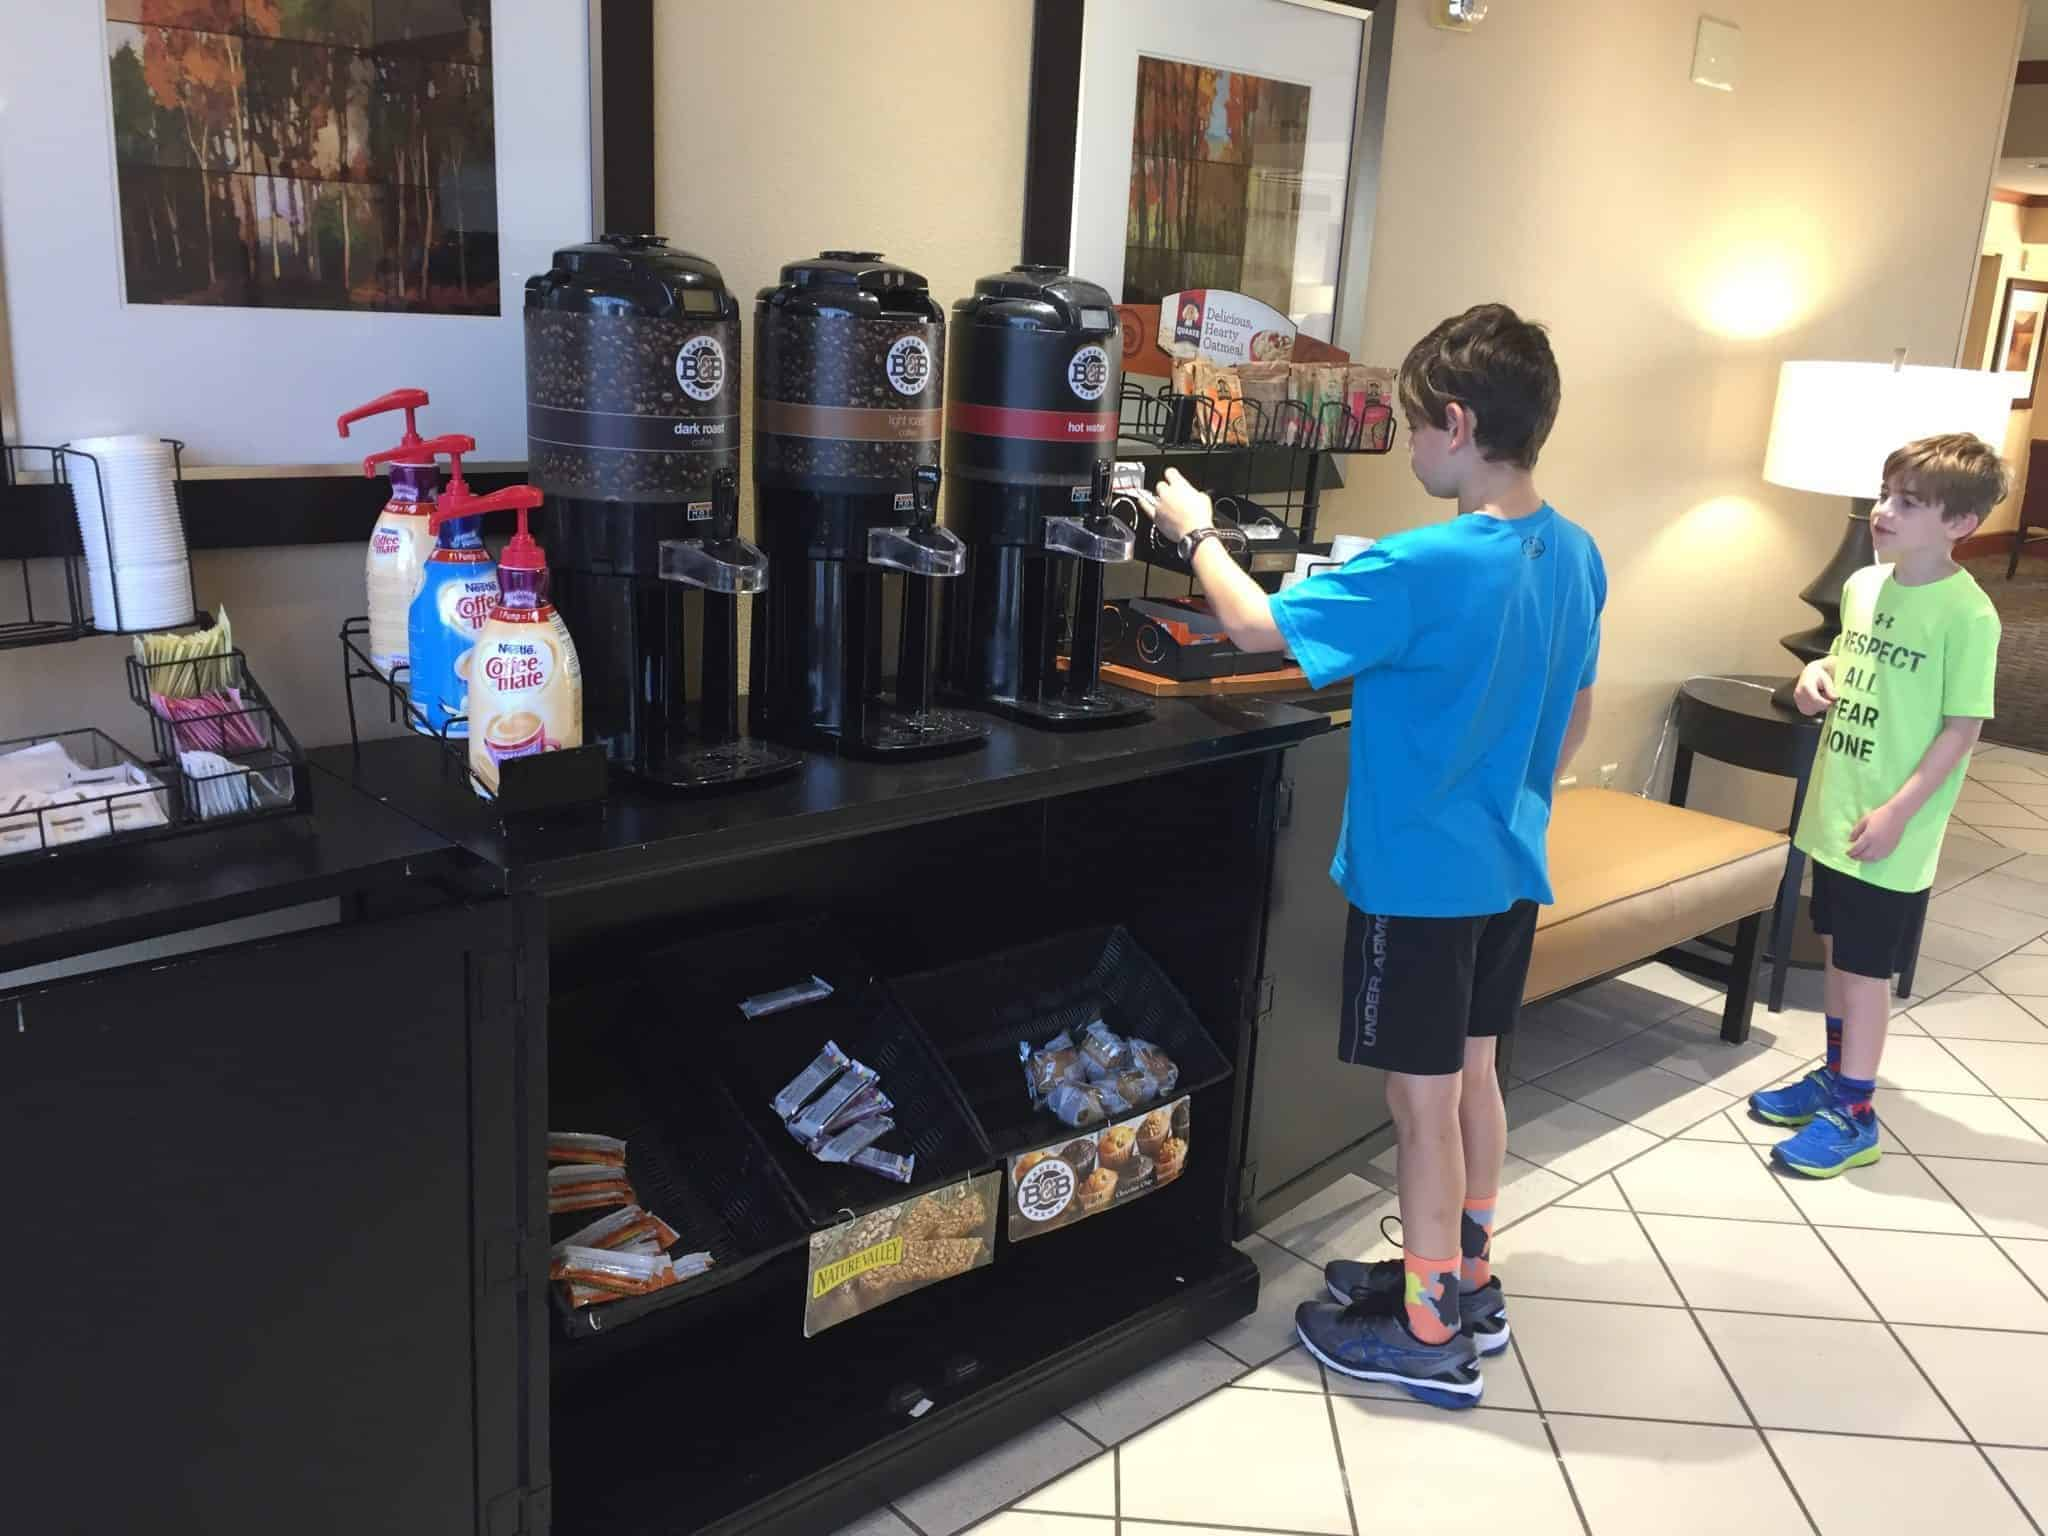 extended-stay-america-for-family-friendly-and-pet-friendly-travel-free-grab-and-go-breakfast-7898304